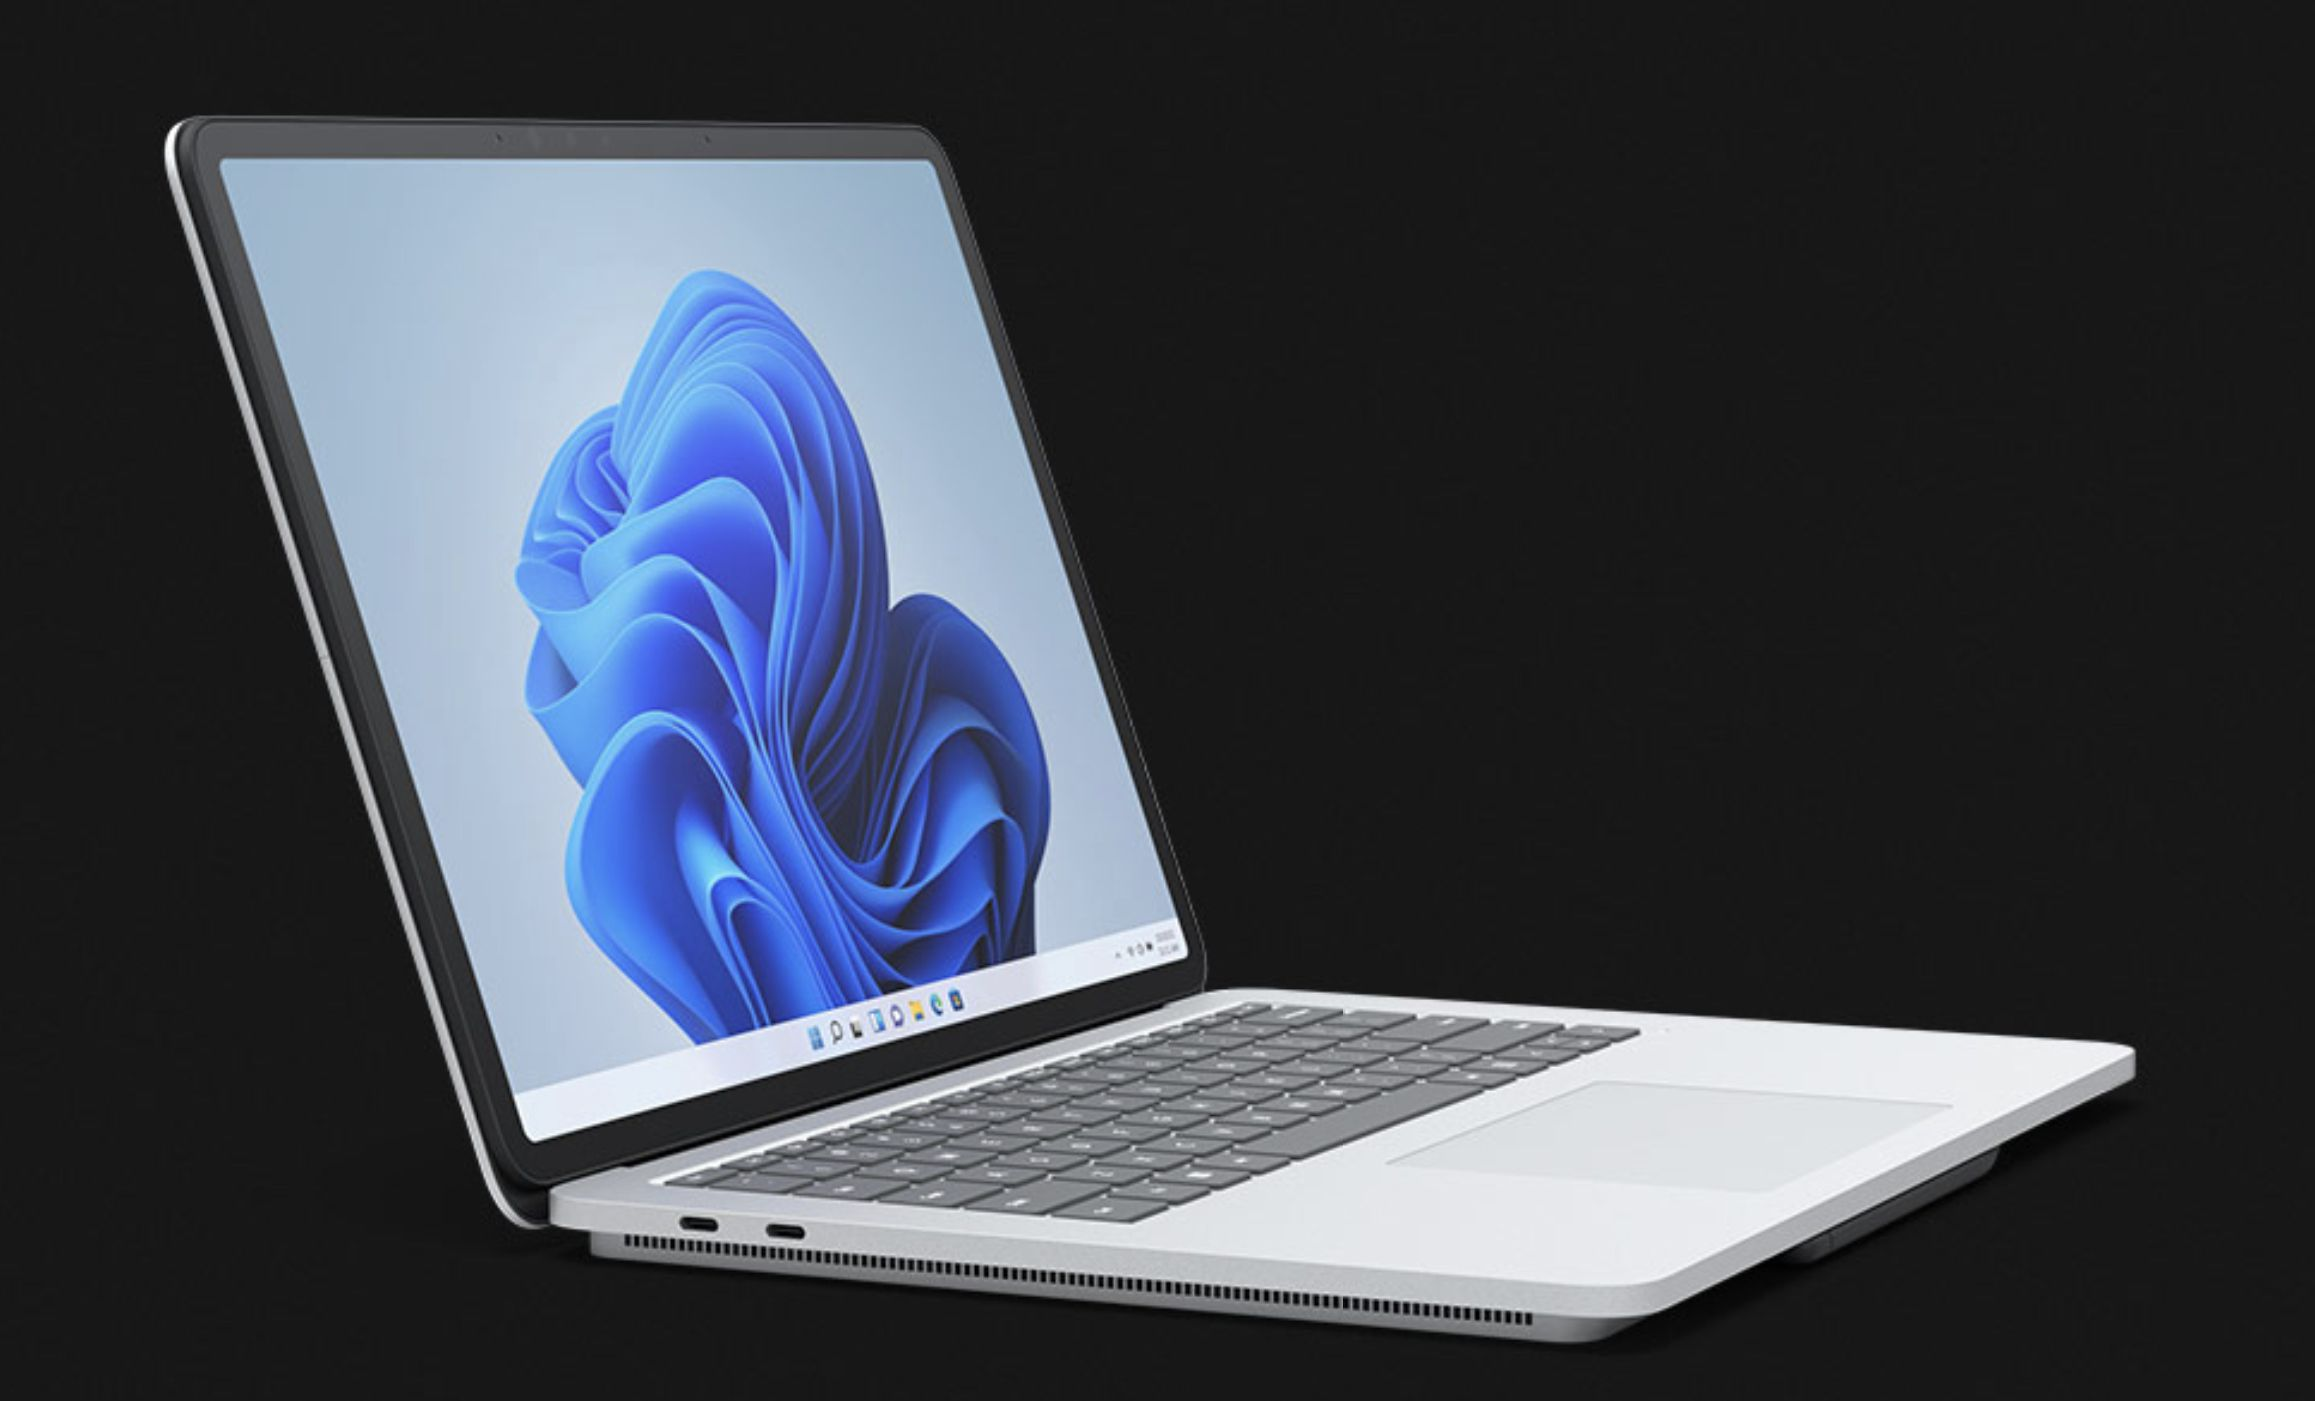 The Surface Pro Laptop from Microsoft.